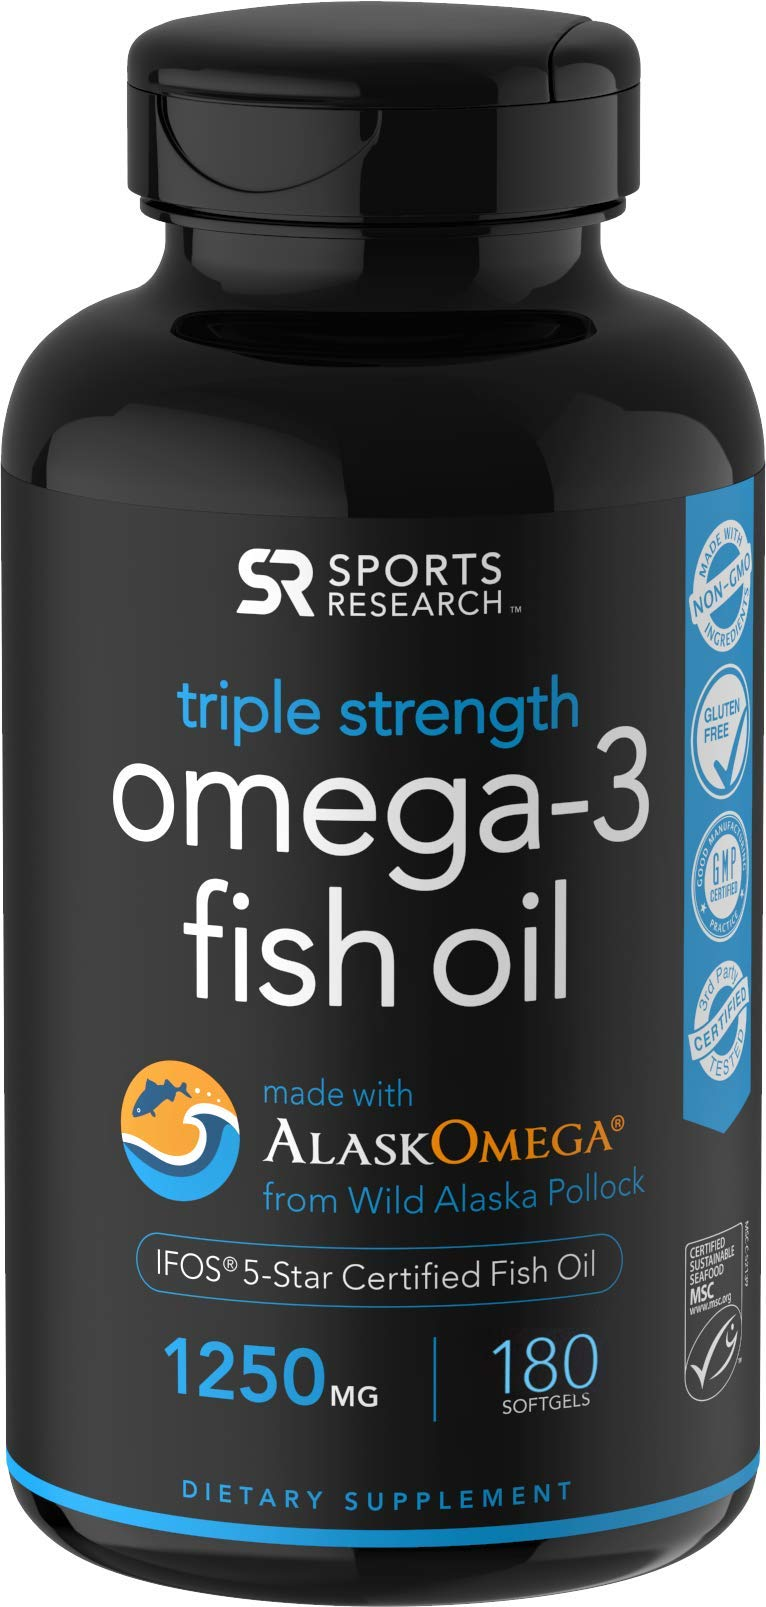 Omega-3 Wild Alaskan Fish Oil (1250mg per Capsule) with Triglyceride EPA & DHA | Heart, Brain & Joint Support | IFOS 5 Star Certified, Non-GMO & Gluten Free (180 Softgels) by Sports Research